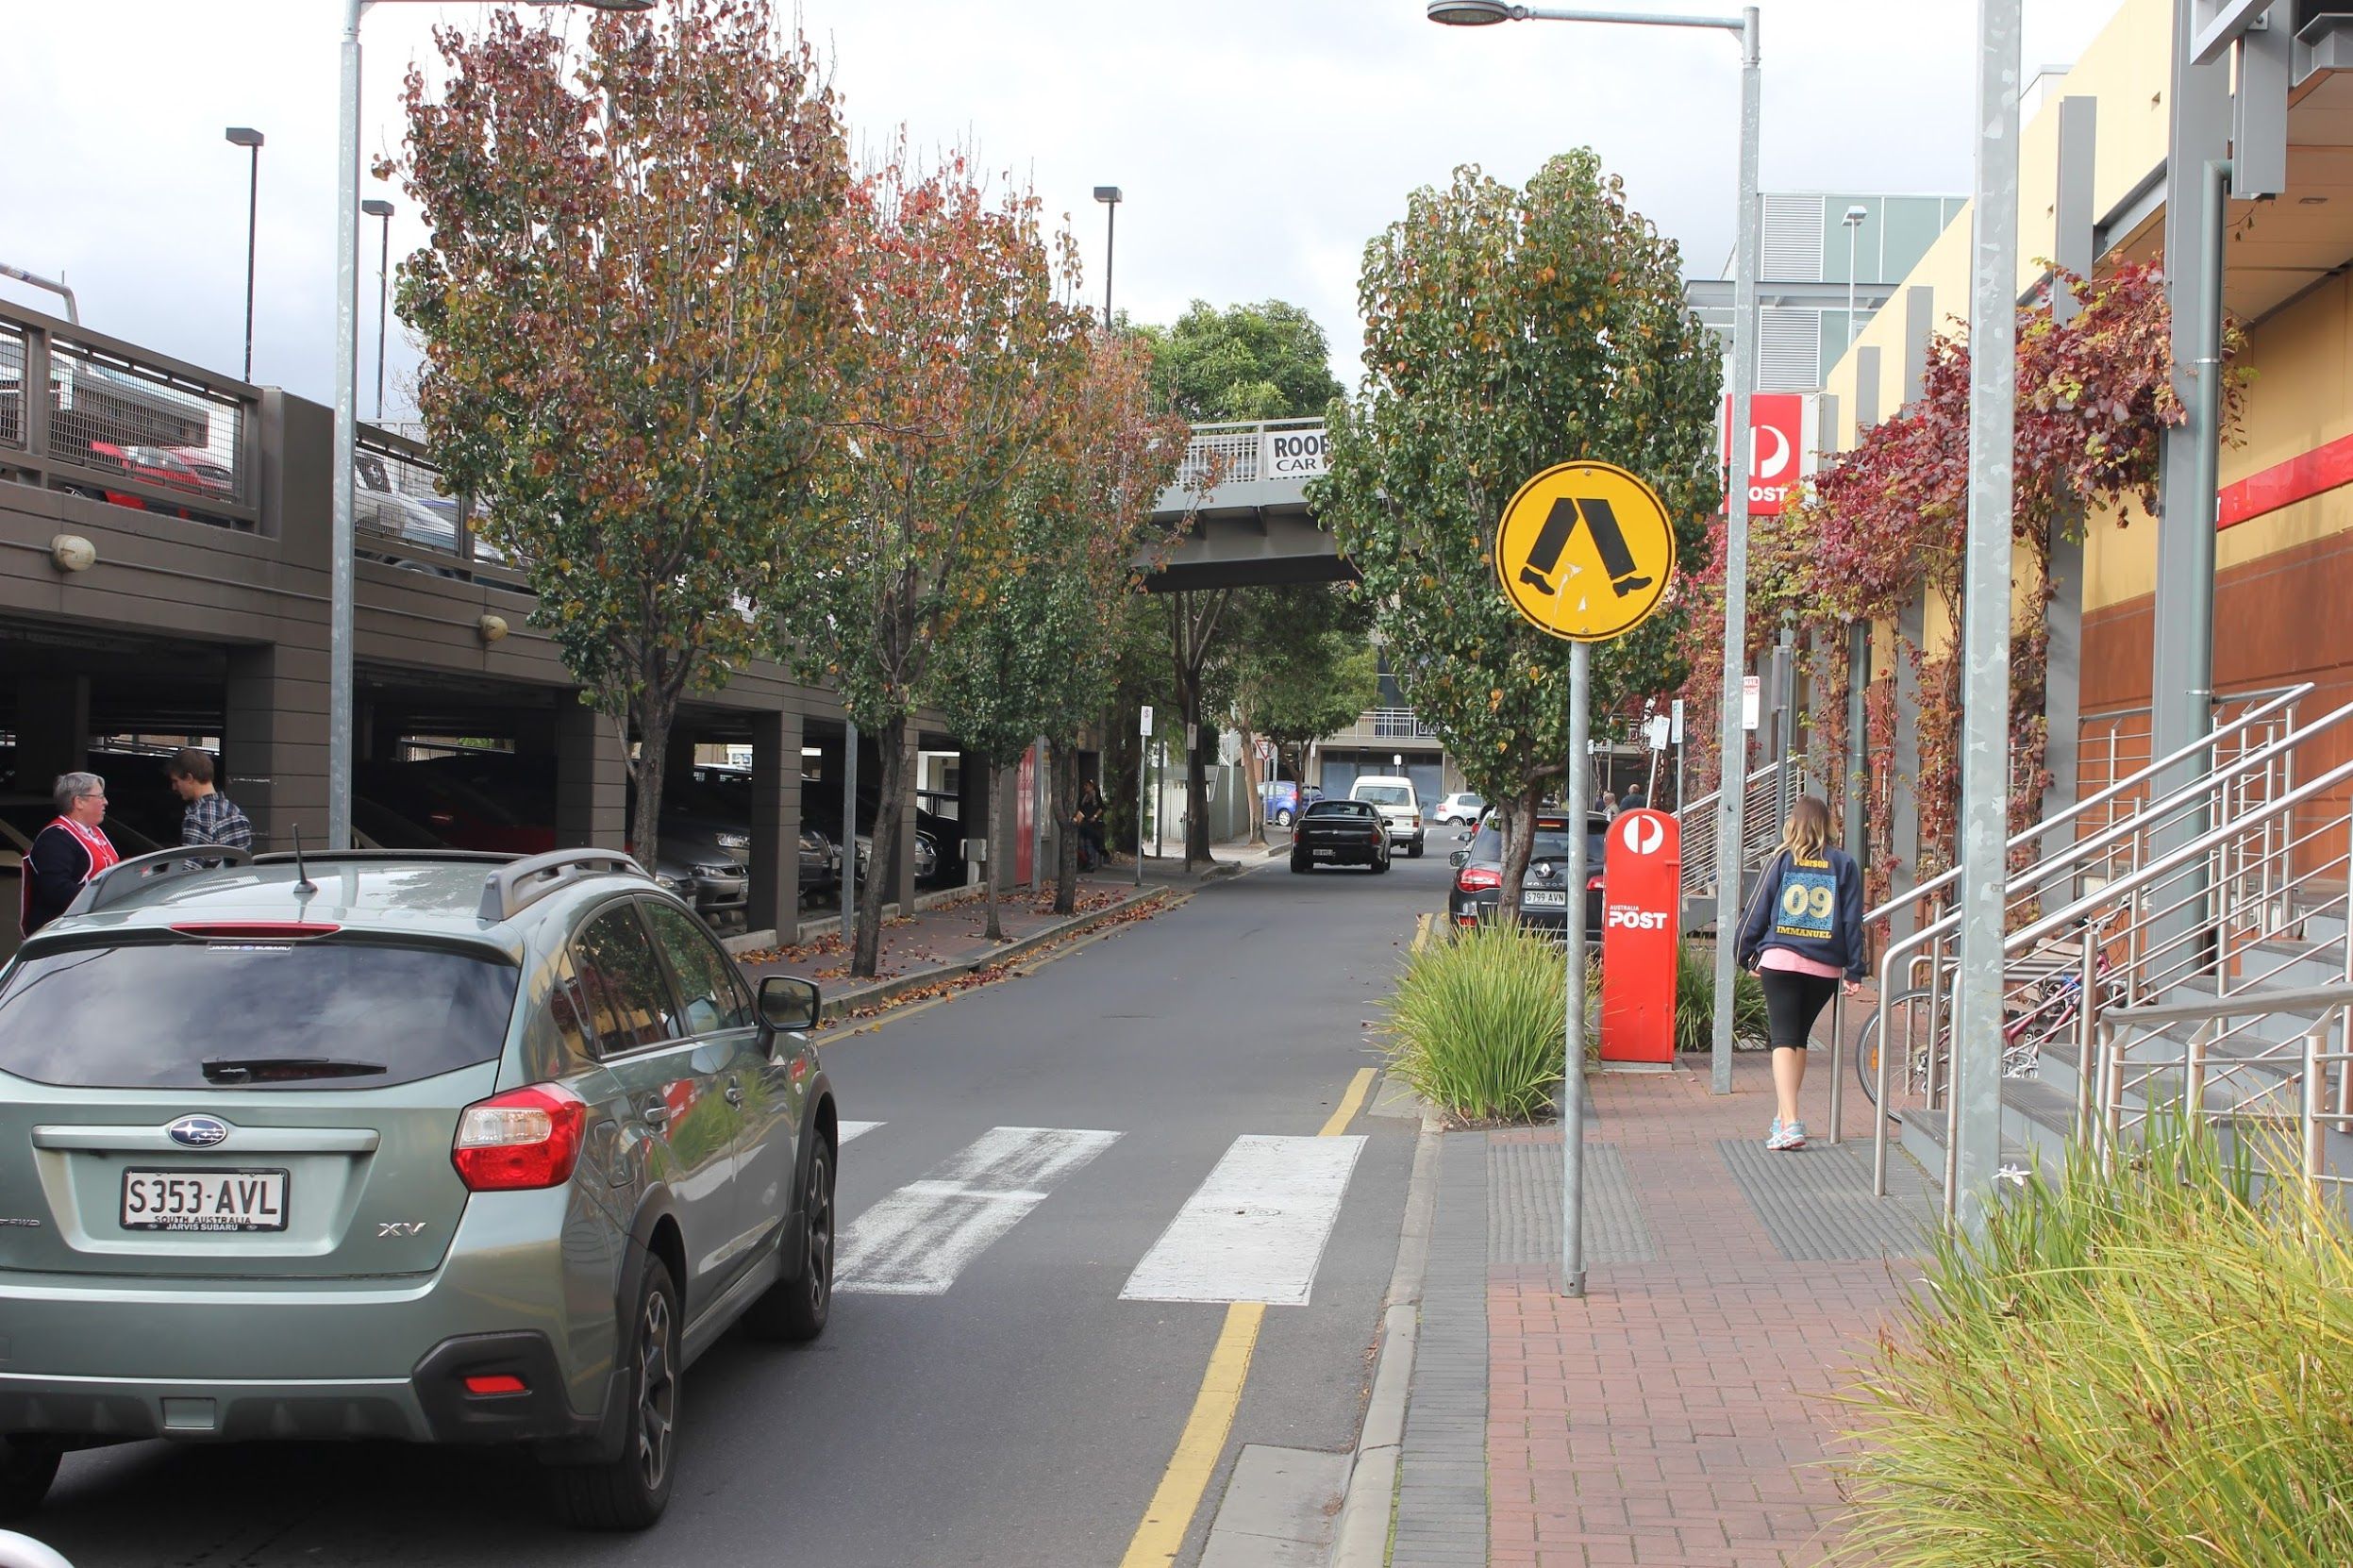 A one-way street in Adelaide with a crossing halfway up the block. A slightly better solution, but how often should we place the crossings? What if we wanted the entire street to be a crossing?